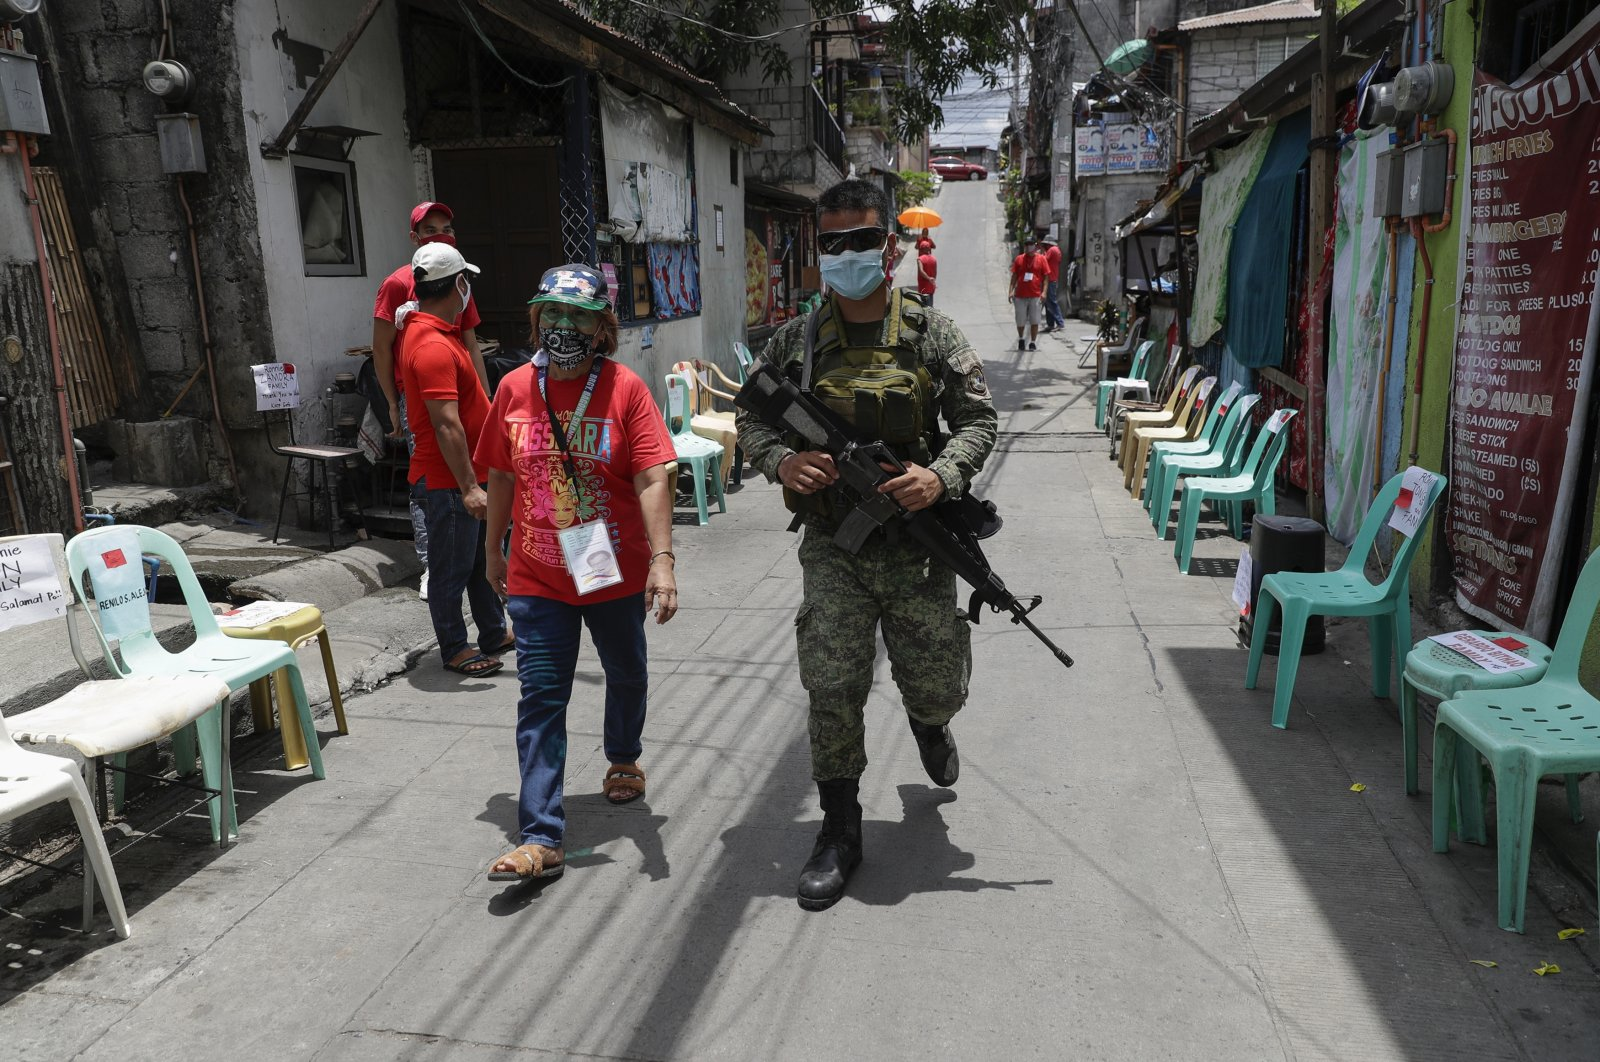 An army soldier walks with a volunteer as they wait for relief goods to be distributed and placed on chairs outside homes during a continuing enhanced community quarantine to prevent the spread of the coronavirus in Quezon City, Metro Manila, Philippines, May 4, 2020. (AP Photo)